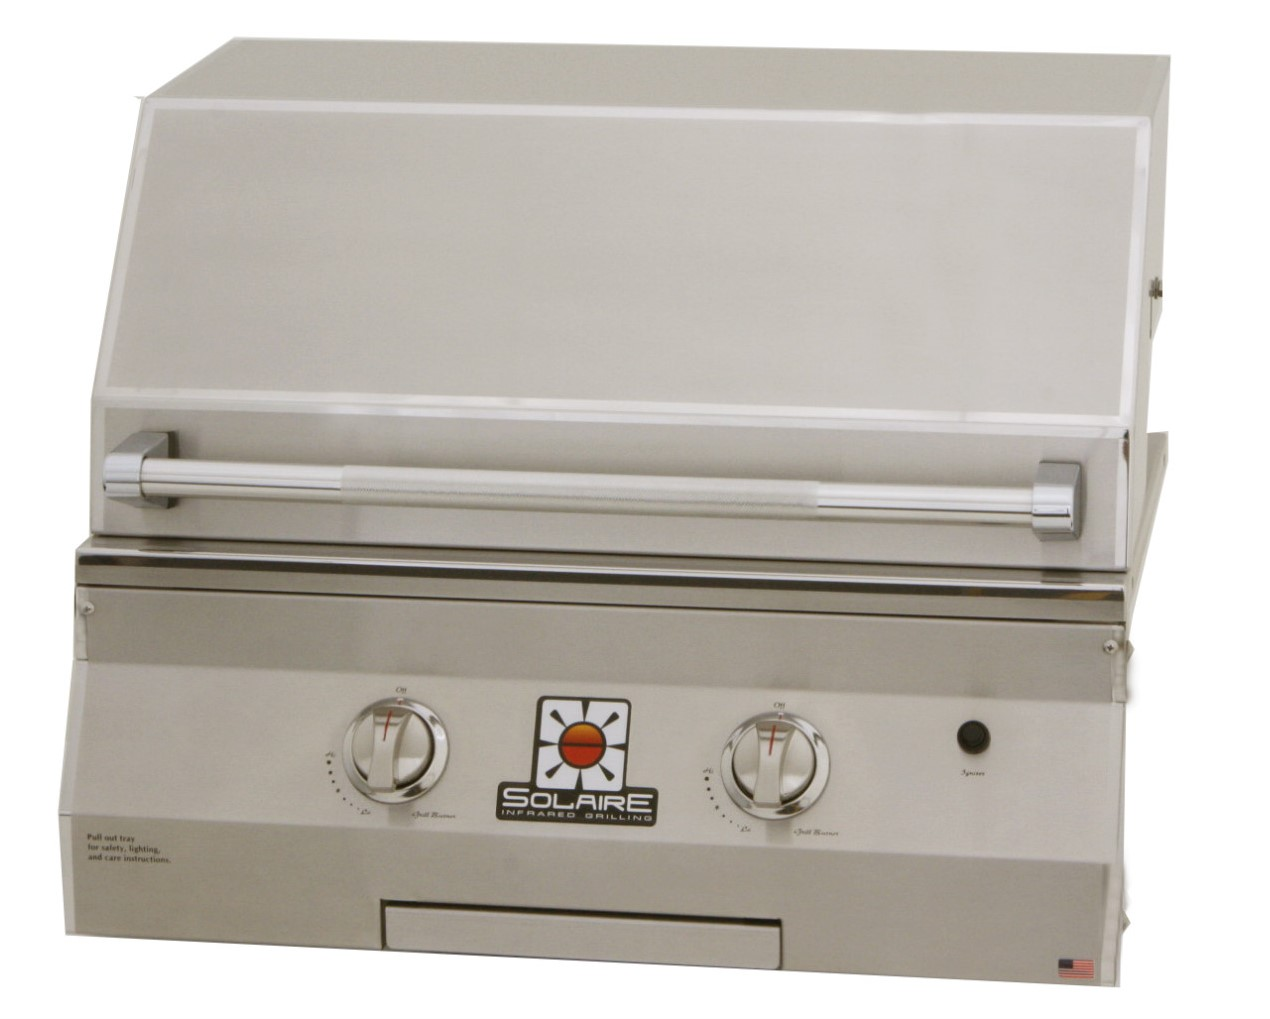 Solaire 27 Built in Grill